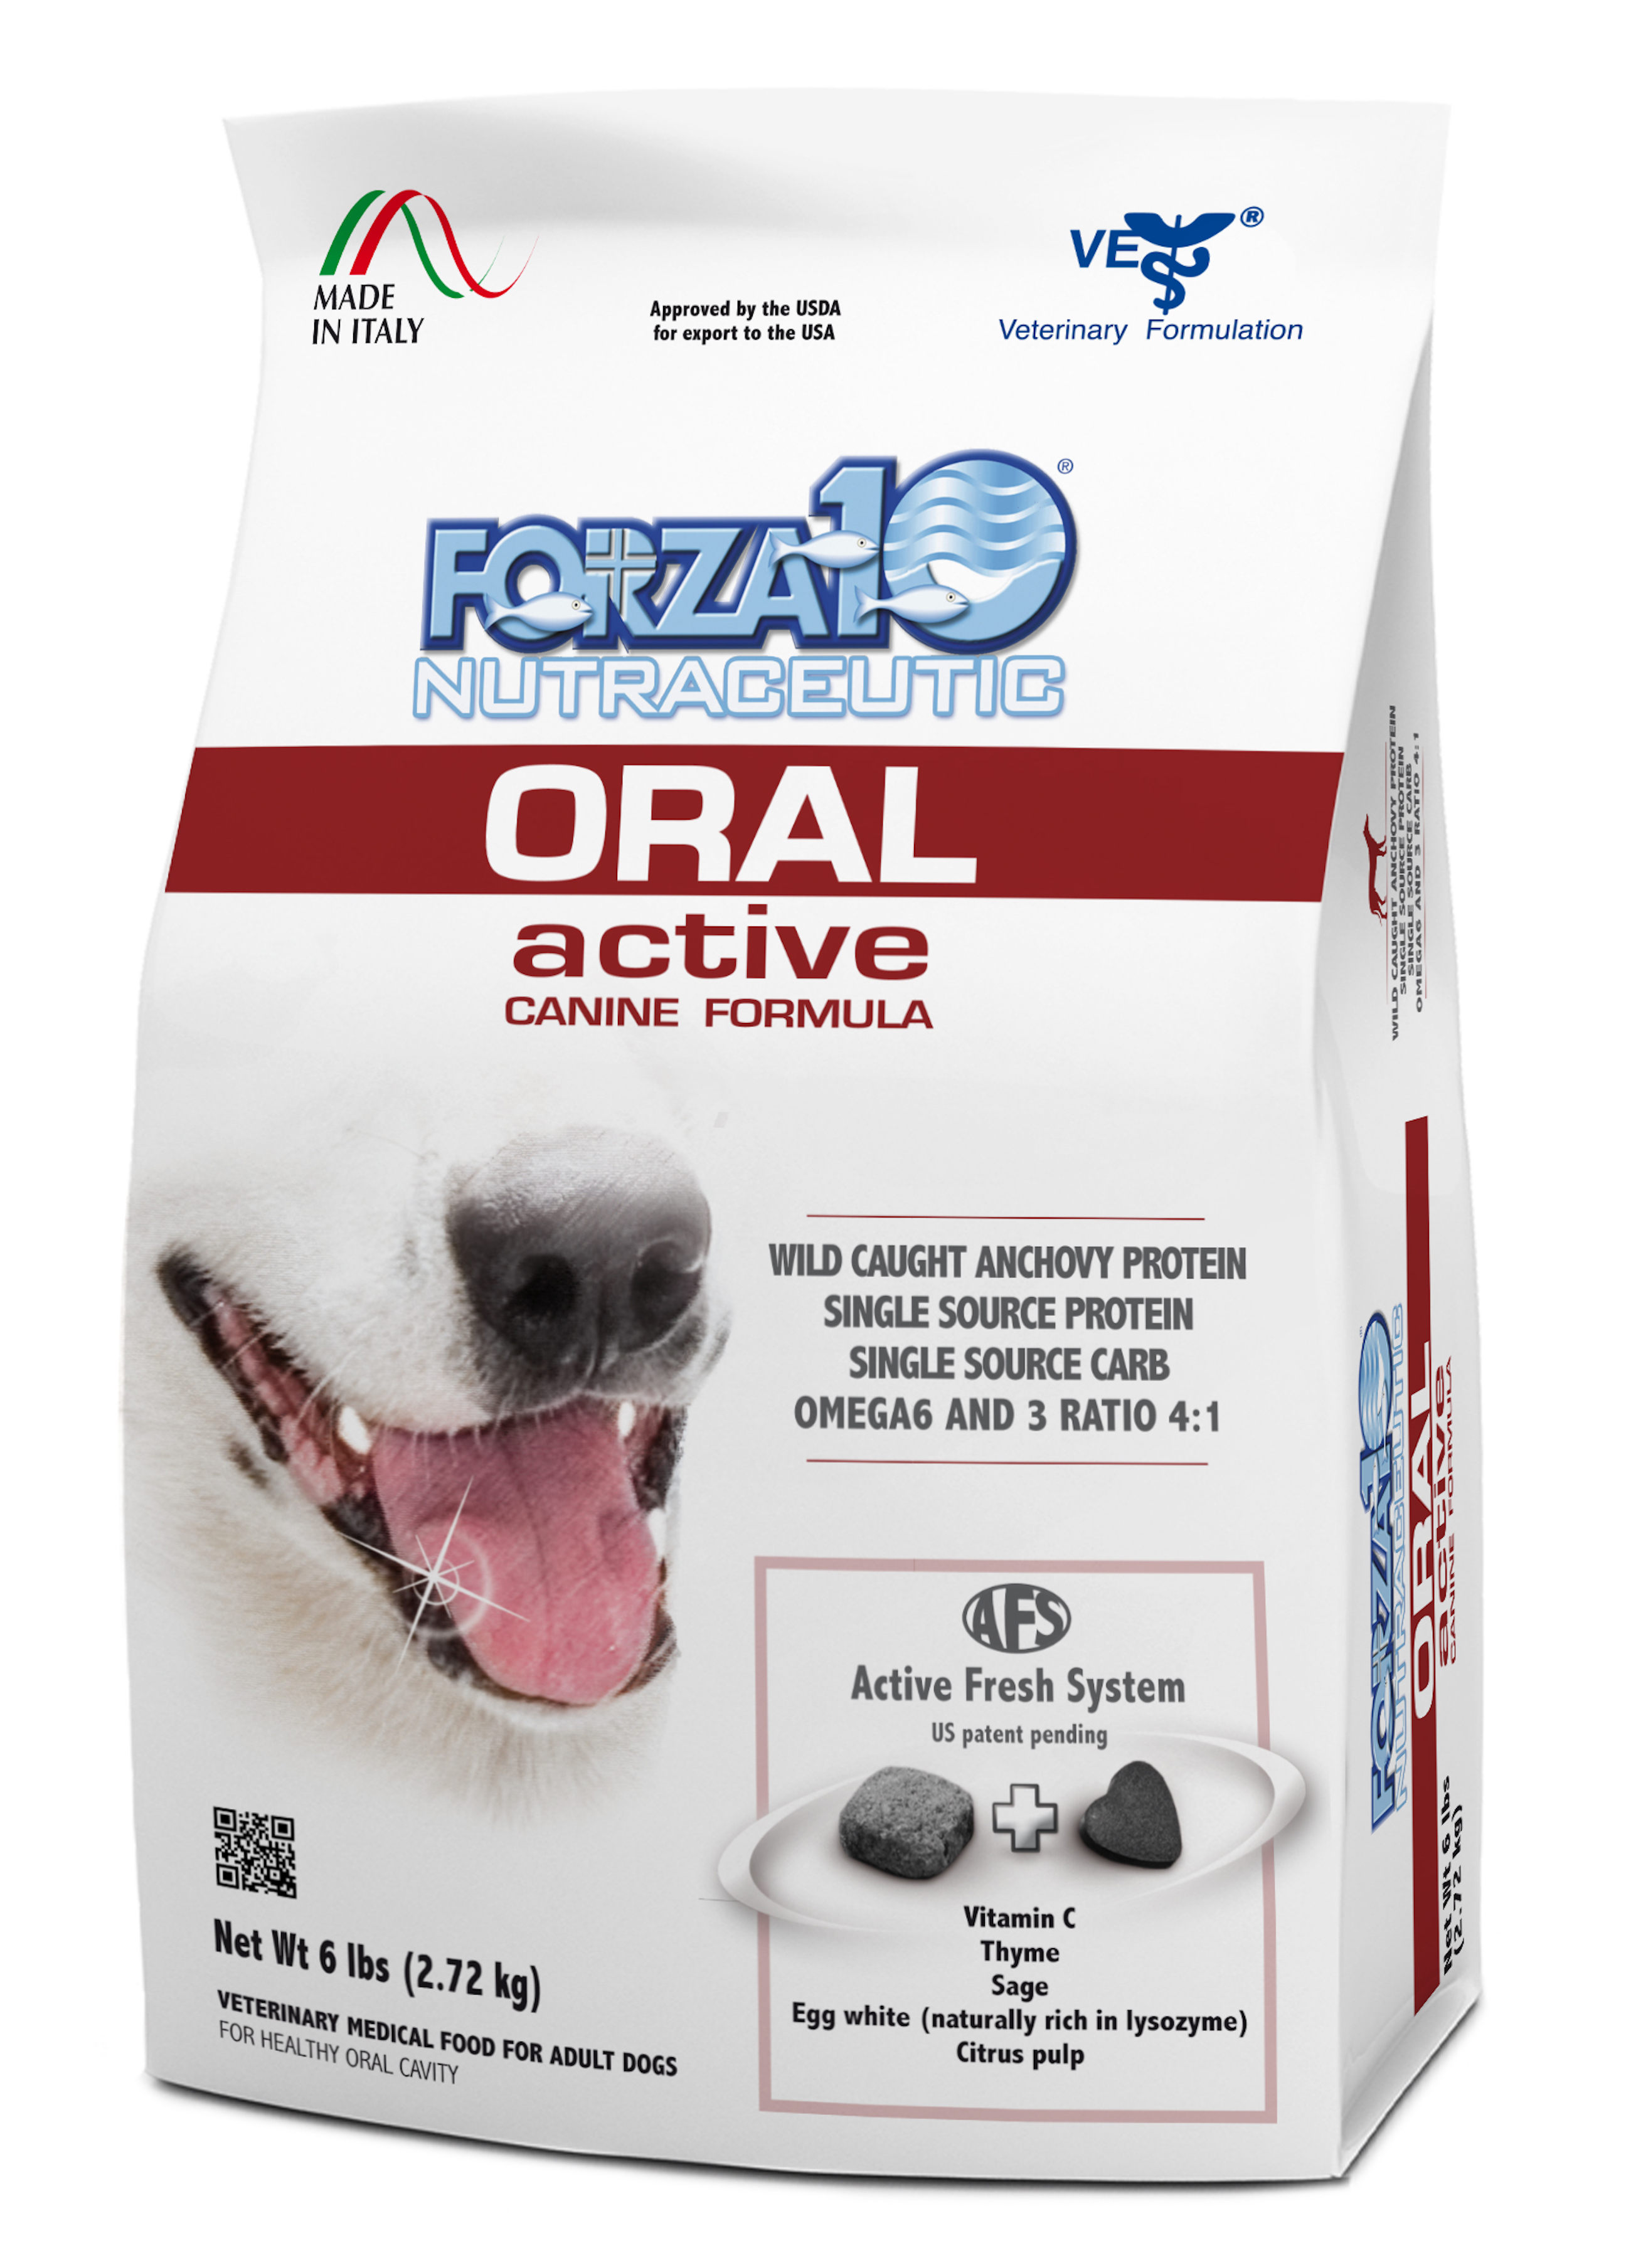 Forza10 Active Line Oral Active Dry Dog Food, 6-lb